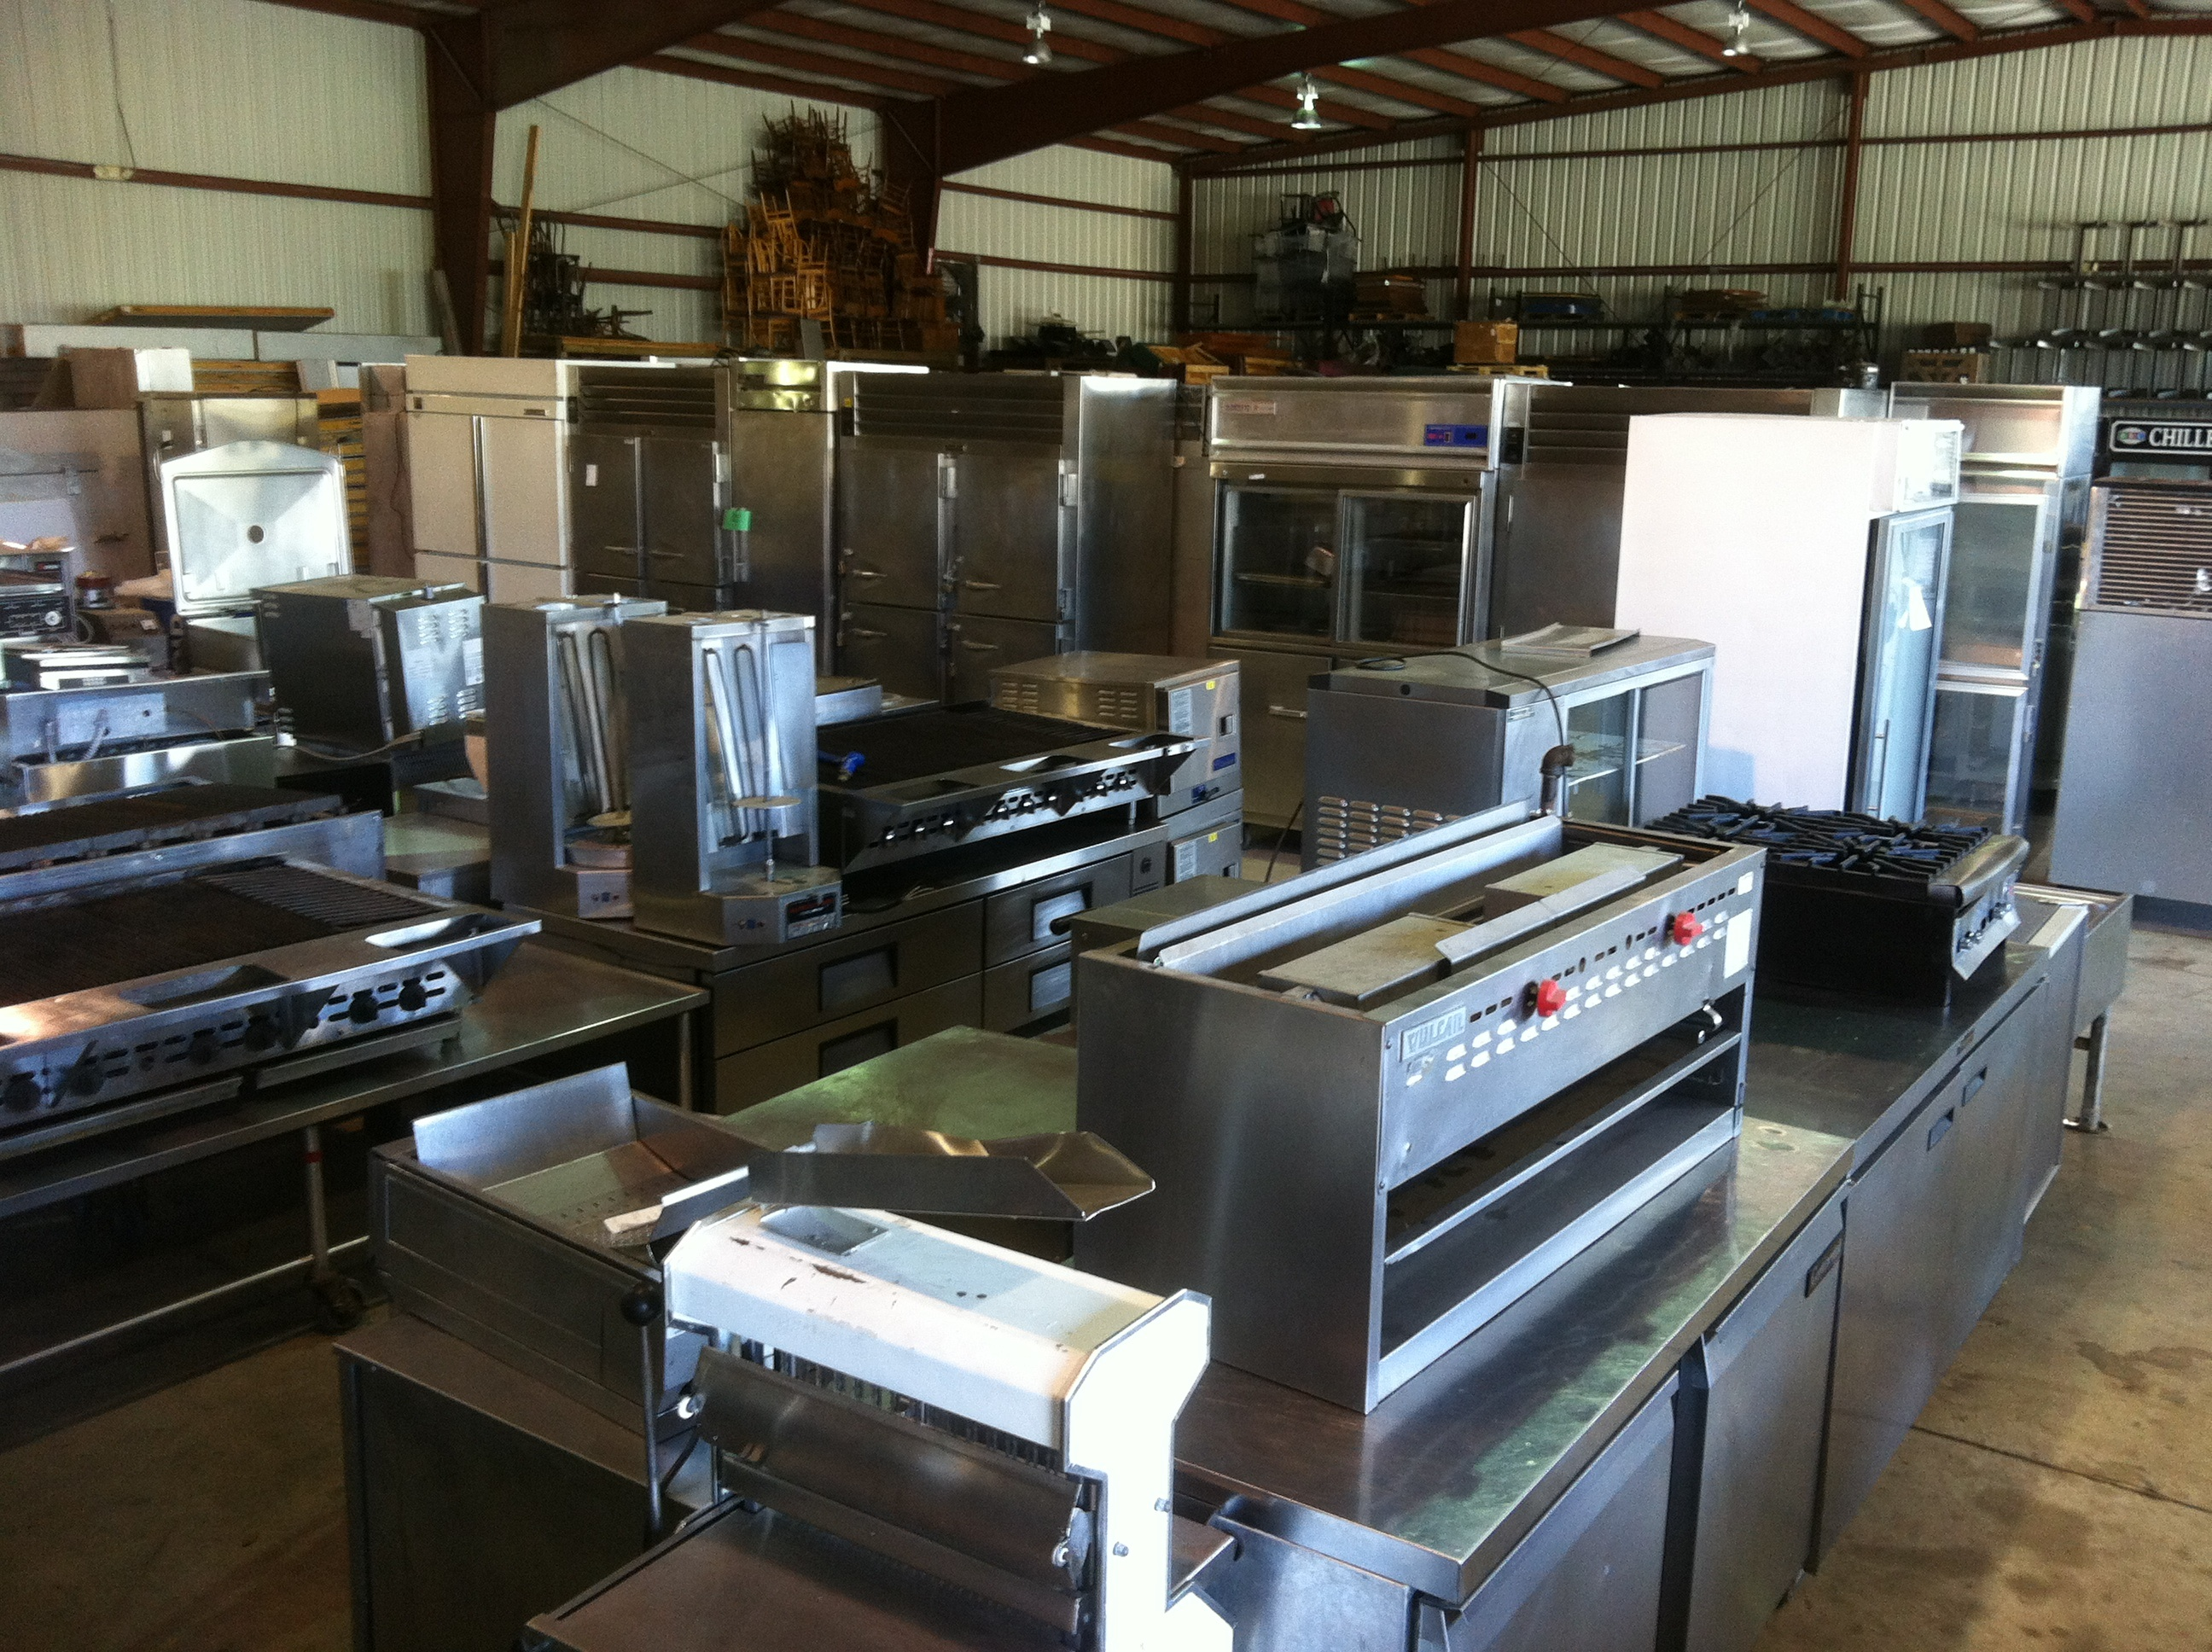 All American Restaurant Equipment Just Another WordPress Site - Restaurant equipment